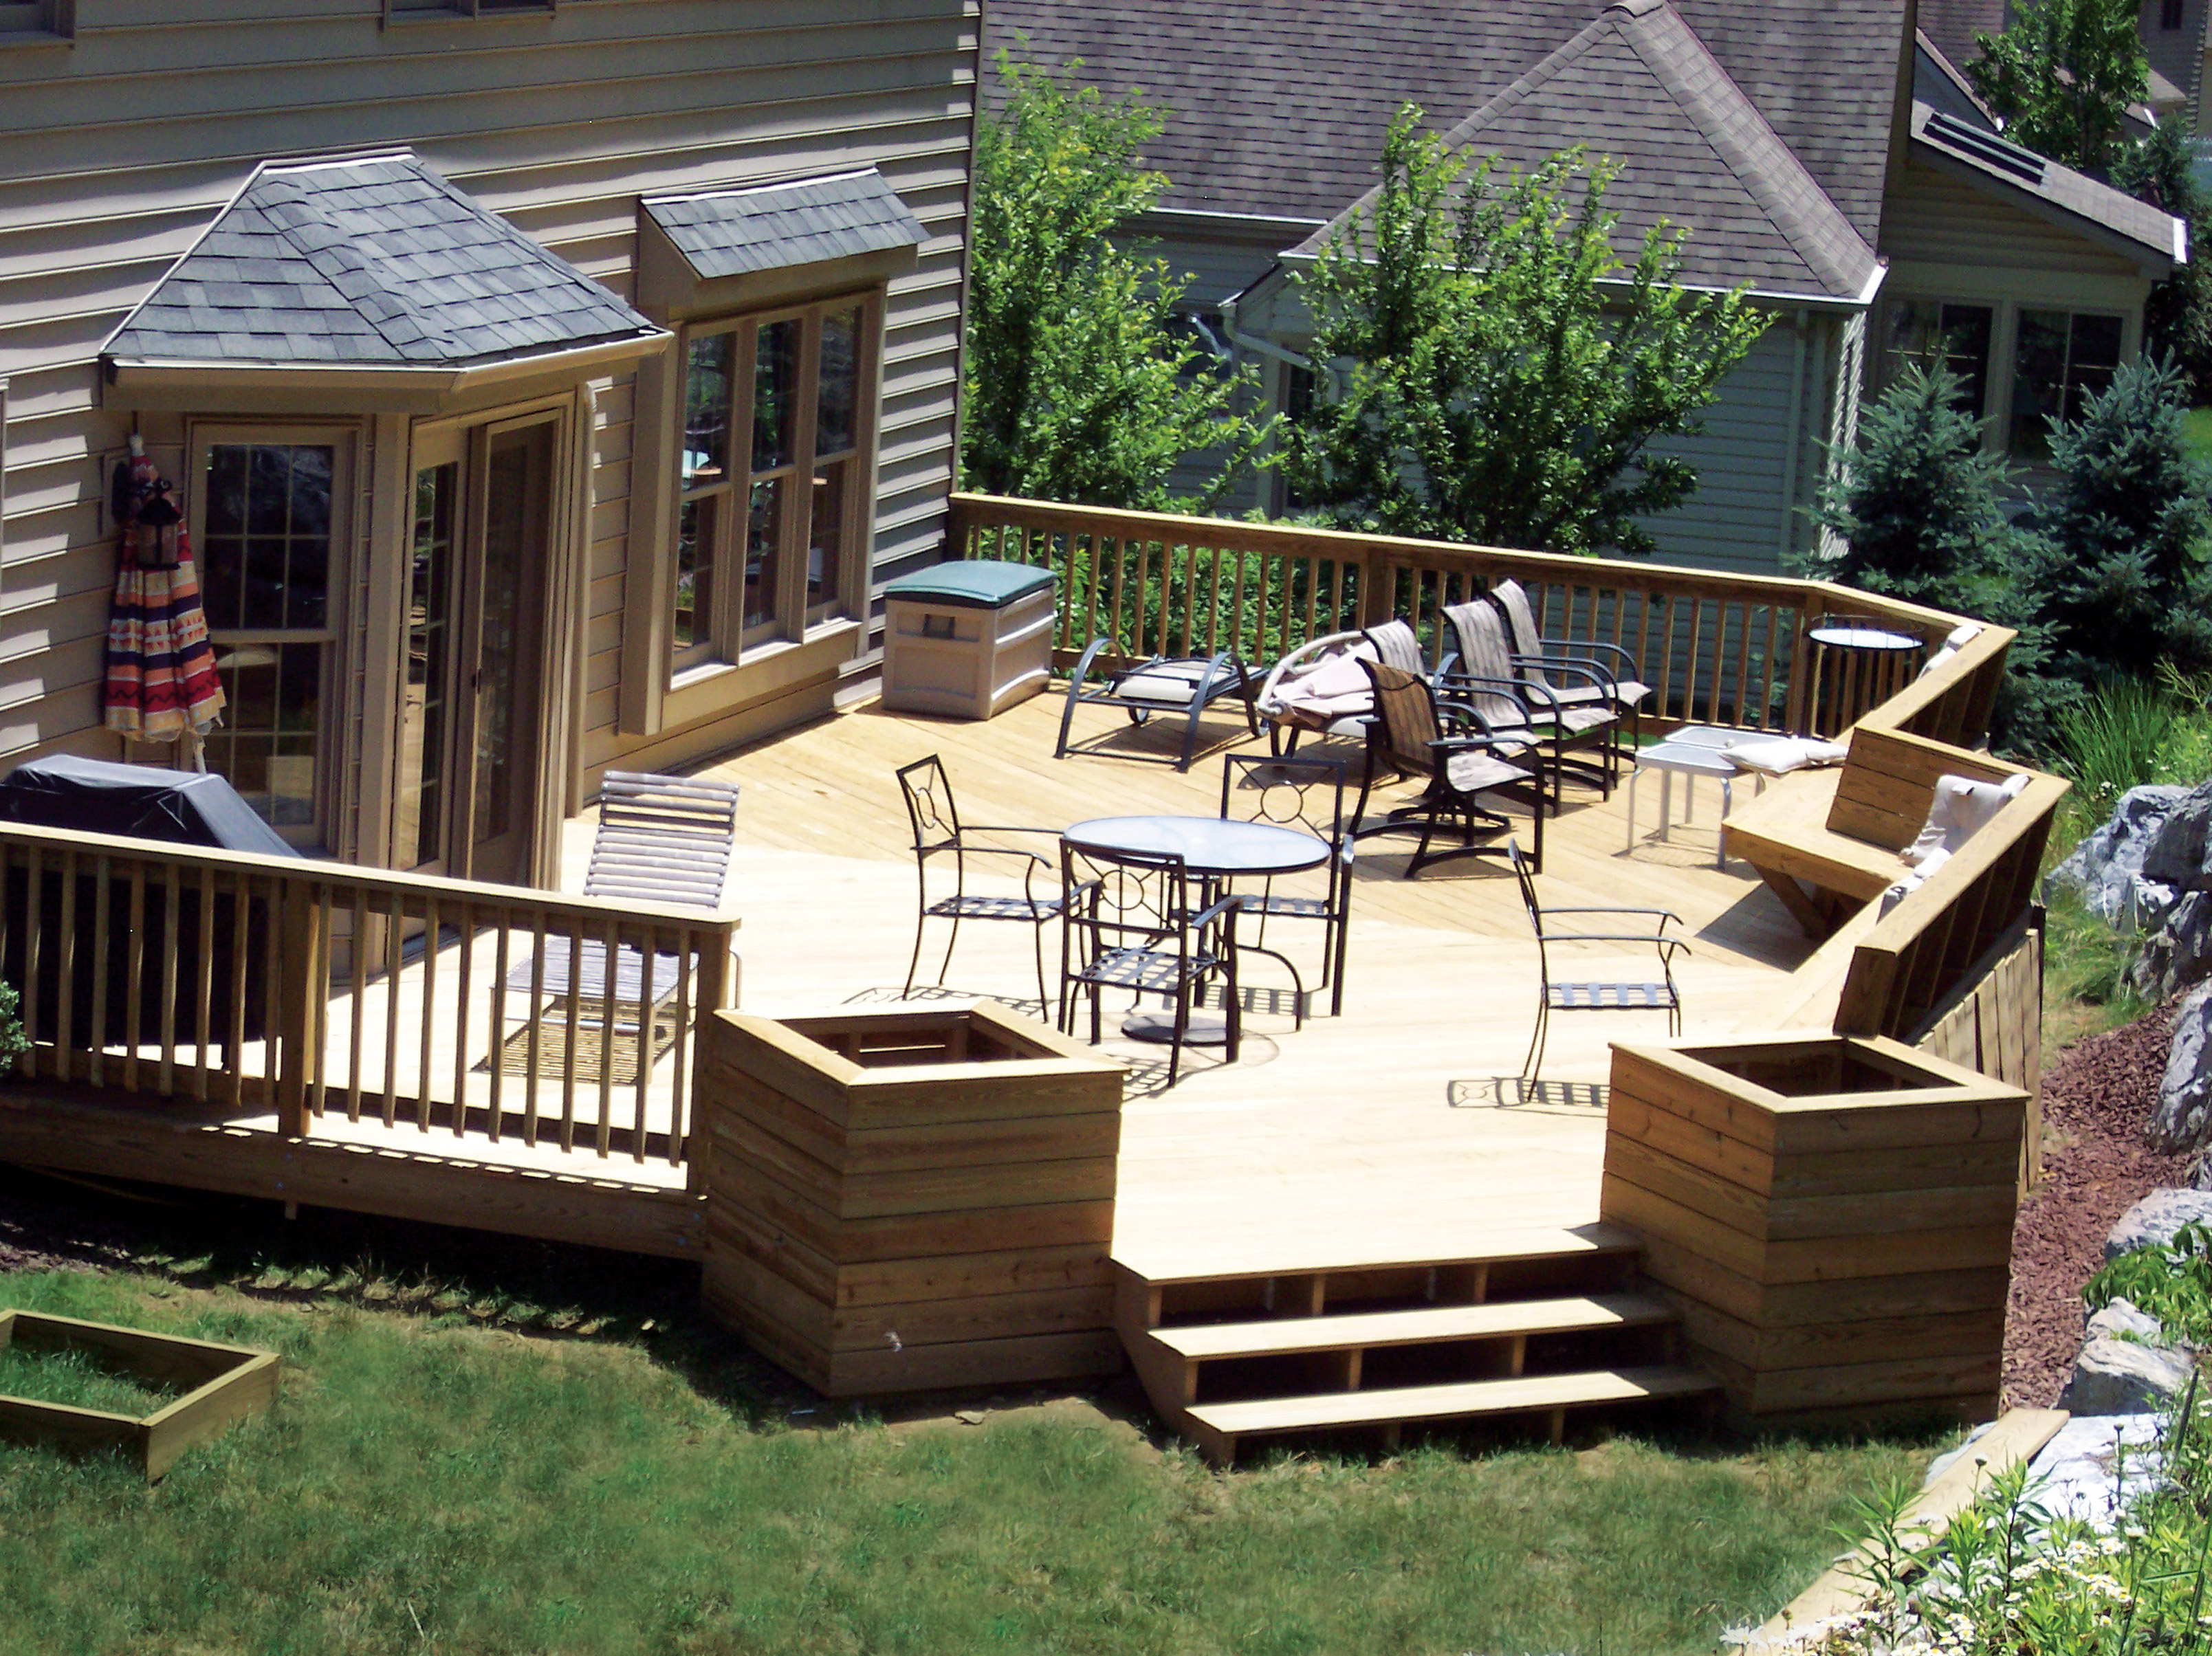 Pictures Of Patio Decks Designs : Sizzling Summer Decks  Lancaster PA Remodeling Tips & TricksLancaster